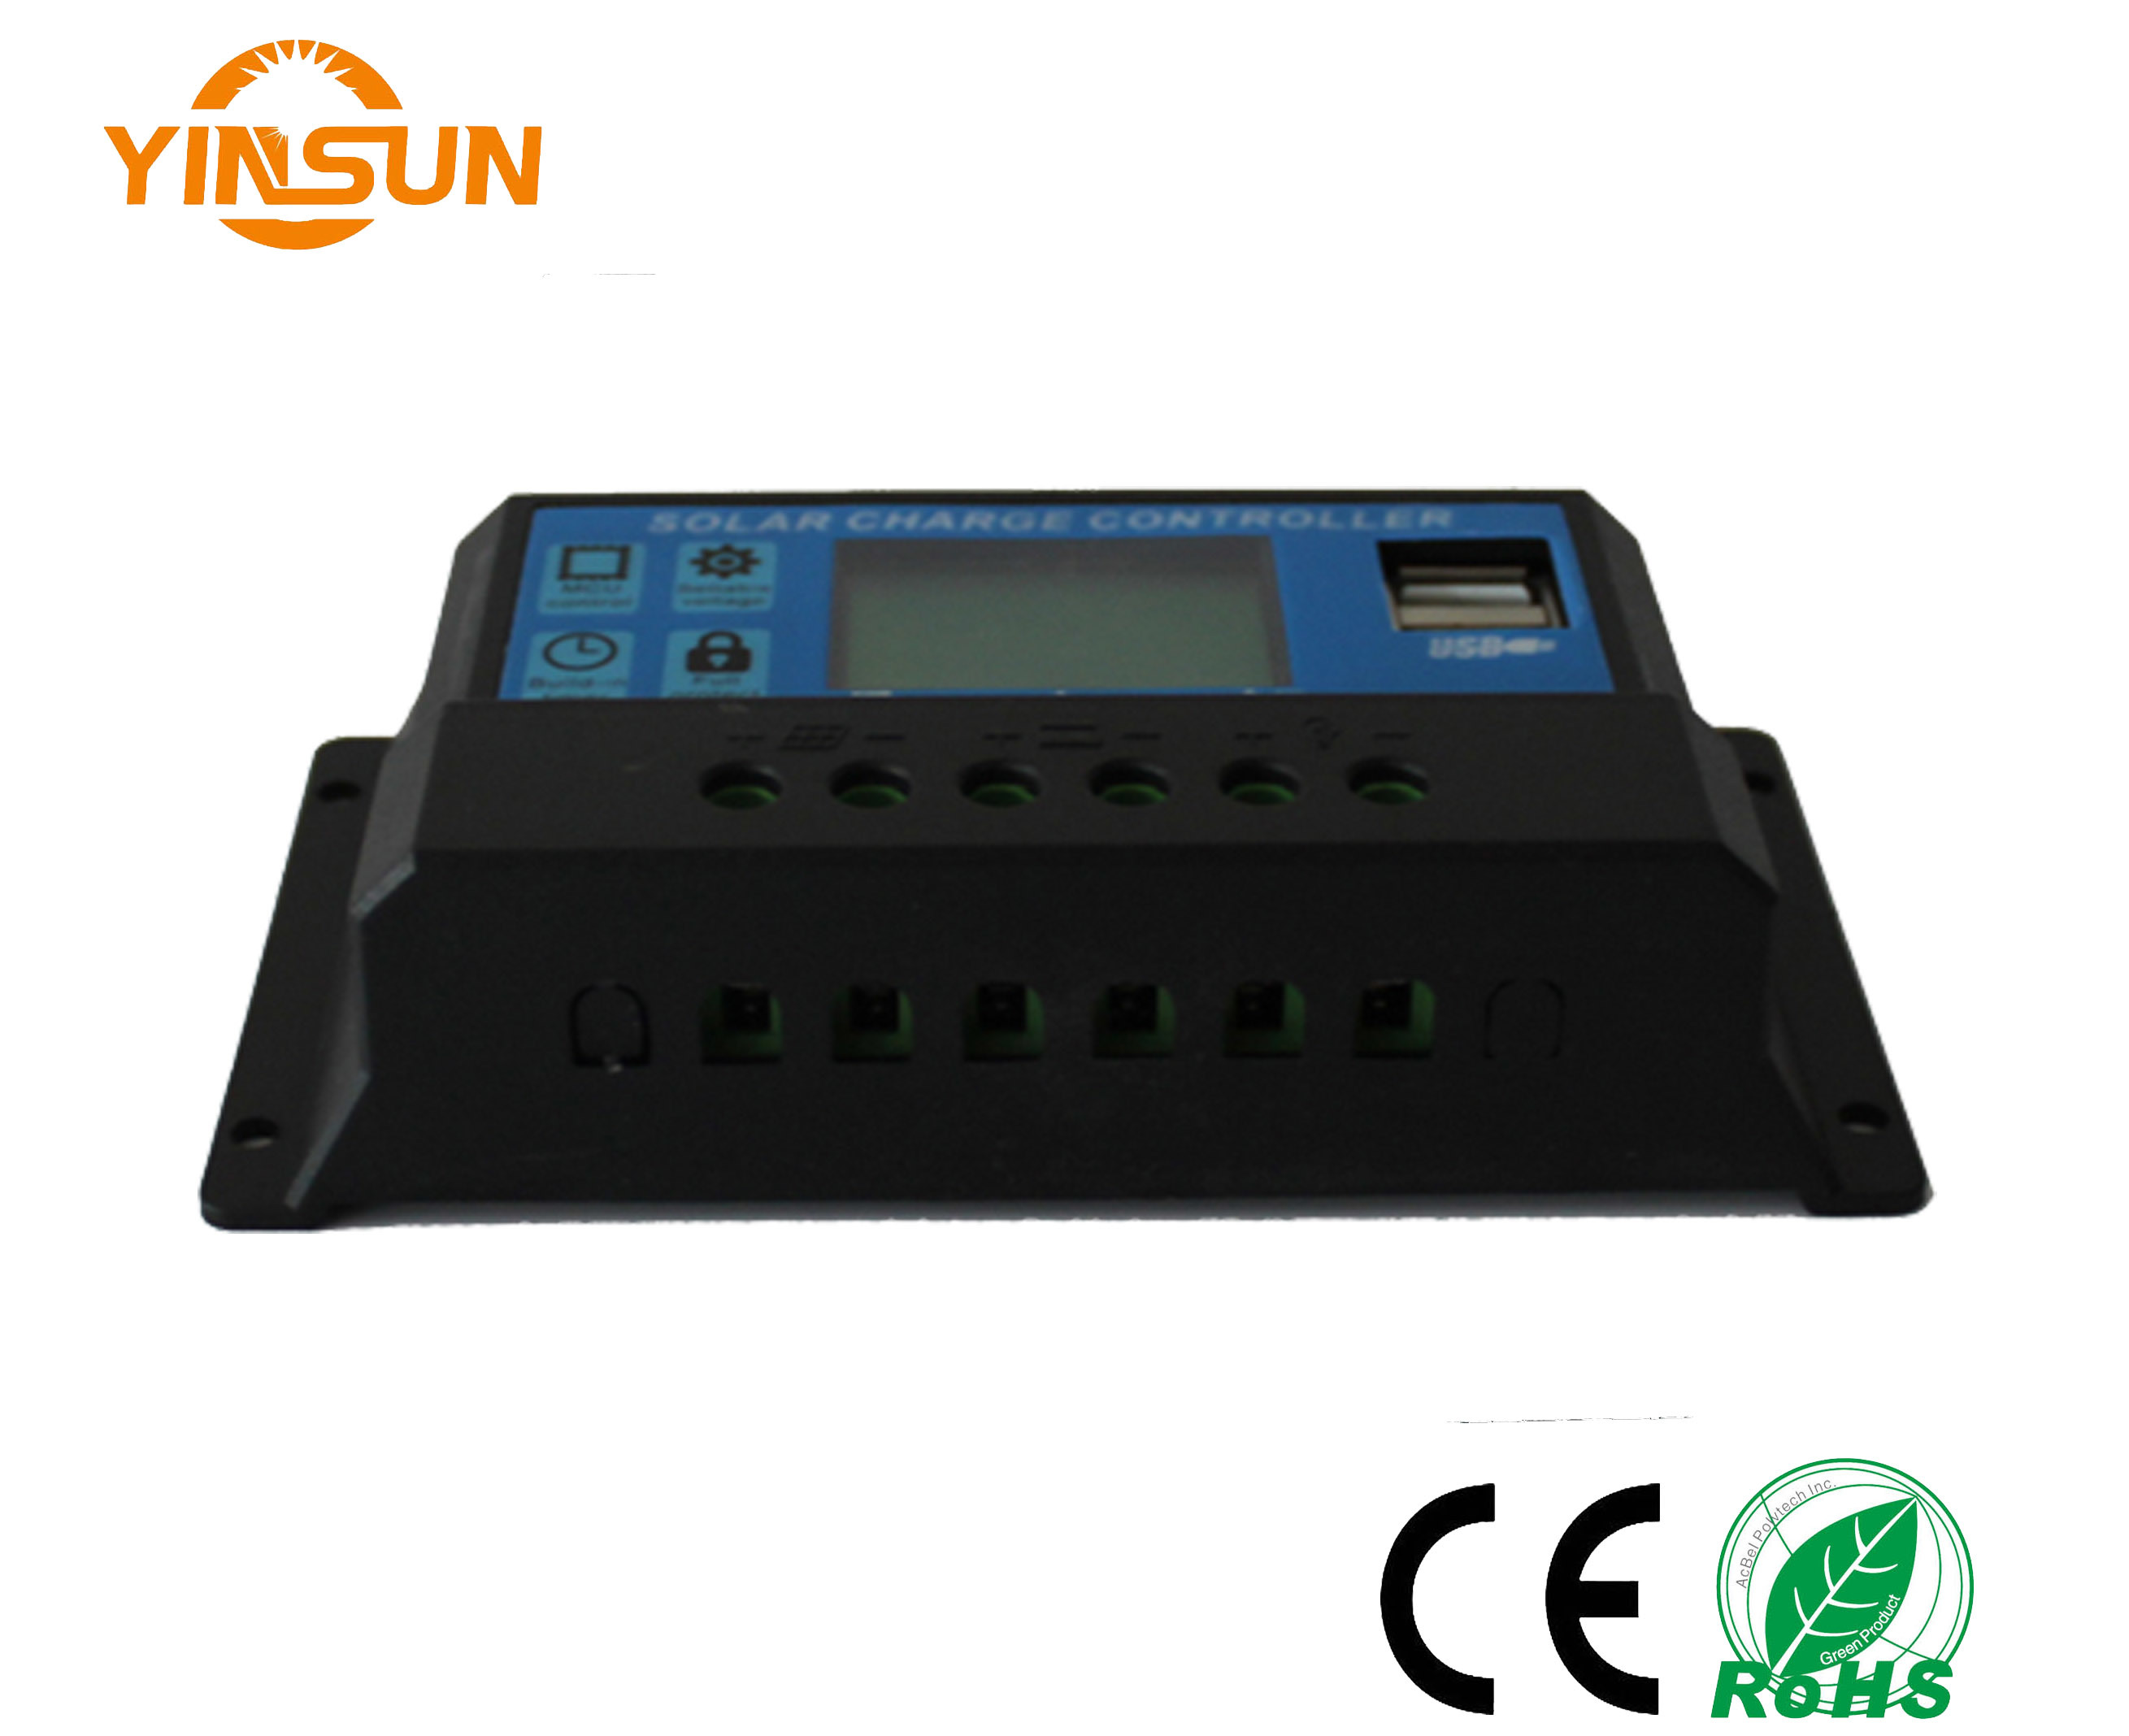 10A 12V/24V Solar Charge Controller, LCD Display Connect Solar Panel Charger Battery Cheap Price for Solar Lighting